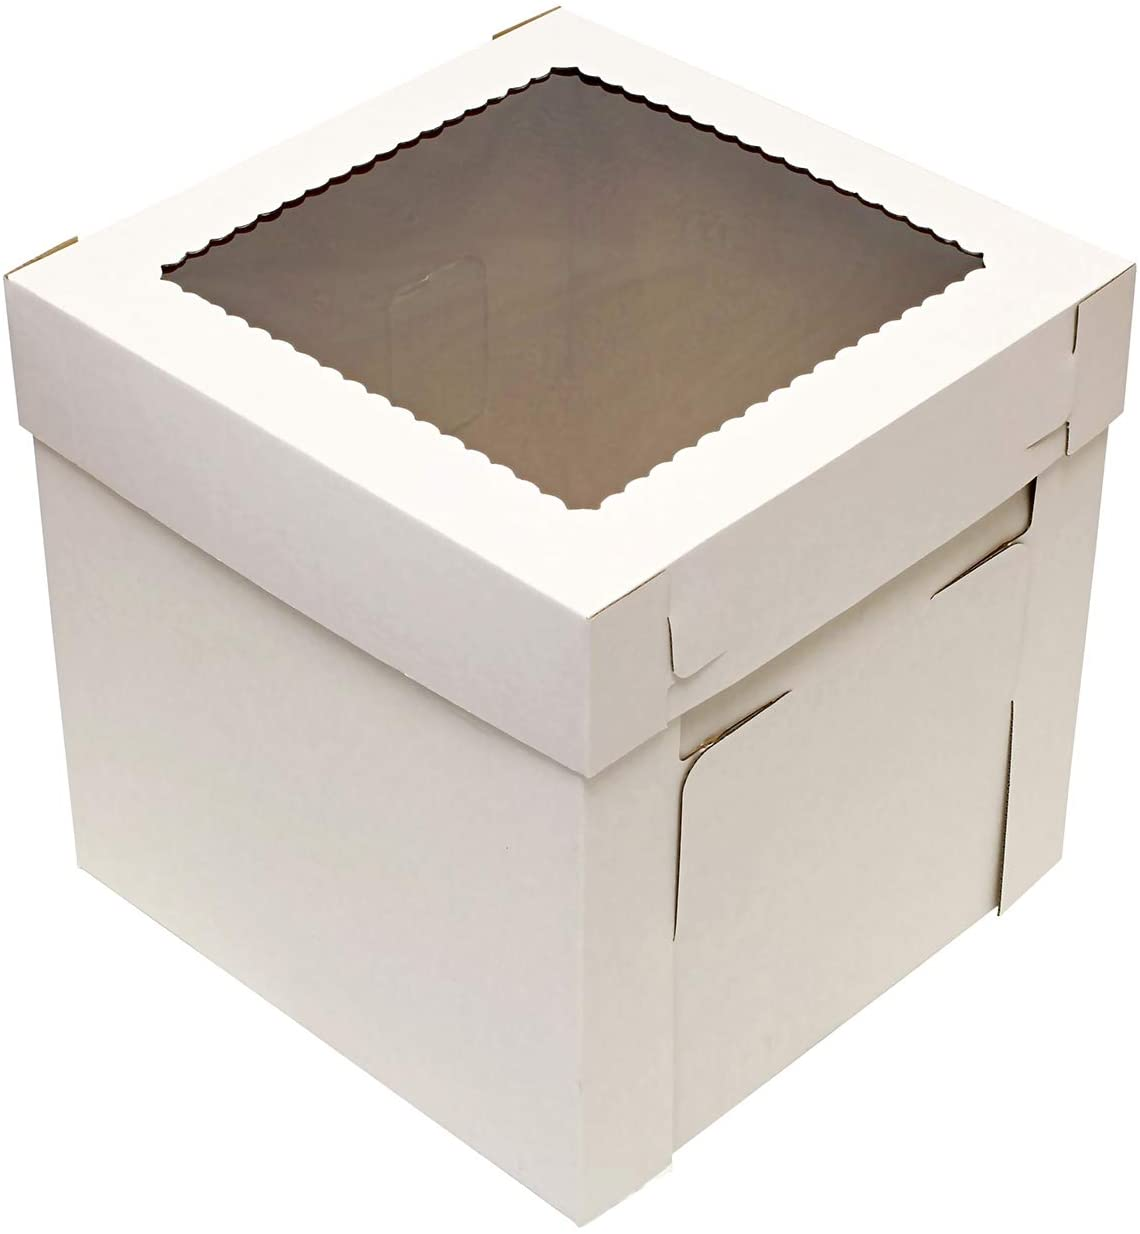 SpecialT Cake Boxes with Window 25pk 10 x 10 x 8in White Bakery Boxes, Disposable Cake Containers, Dessert Boxes